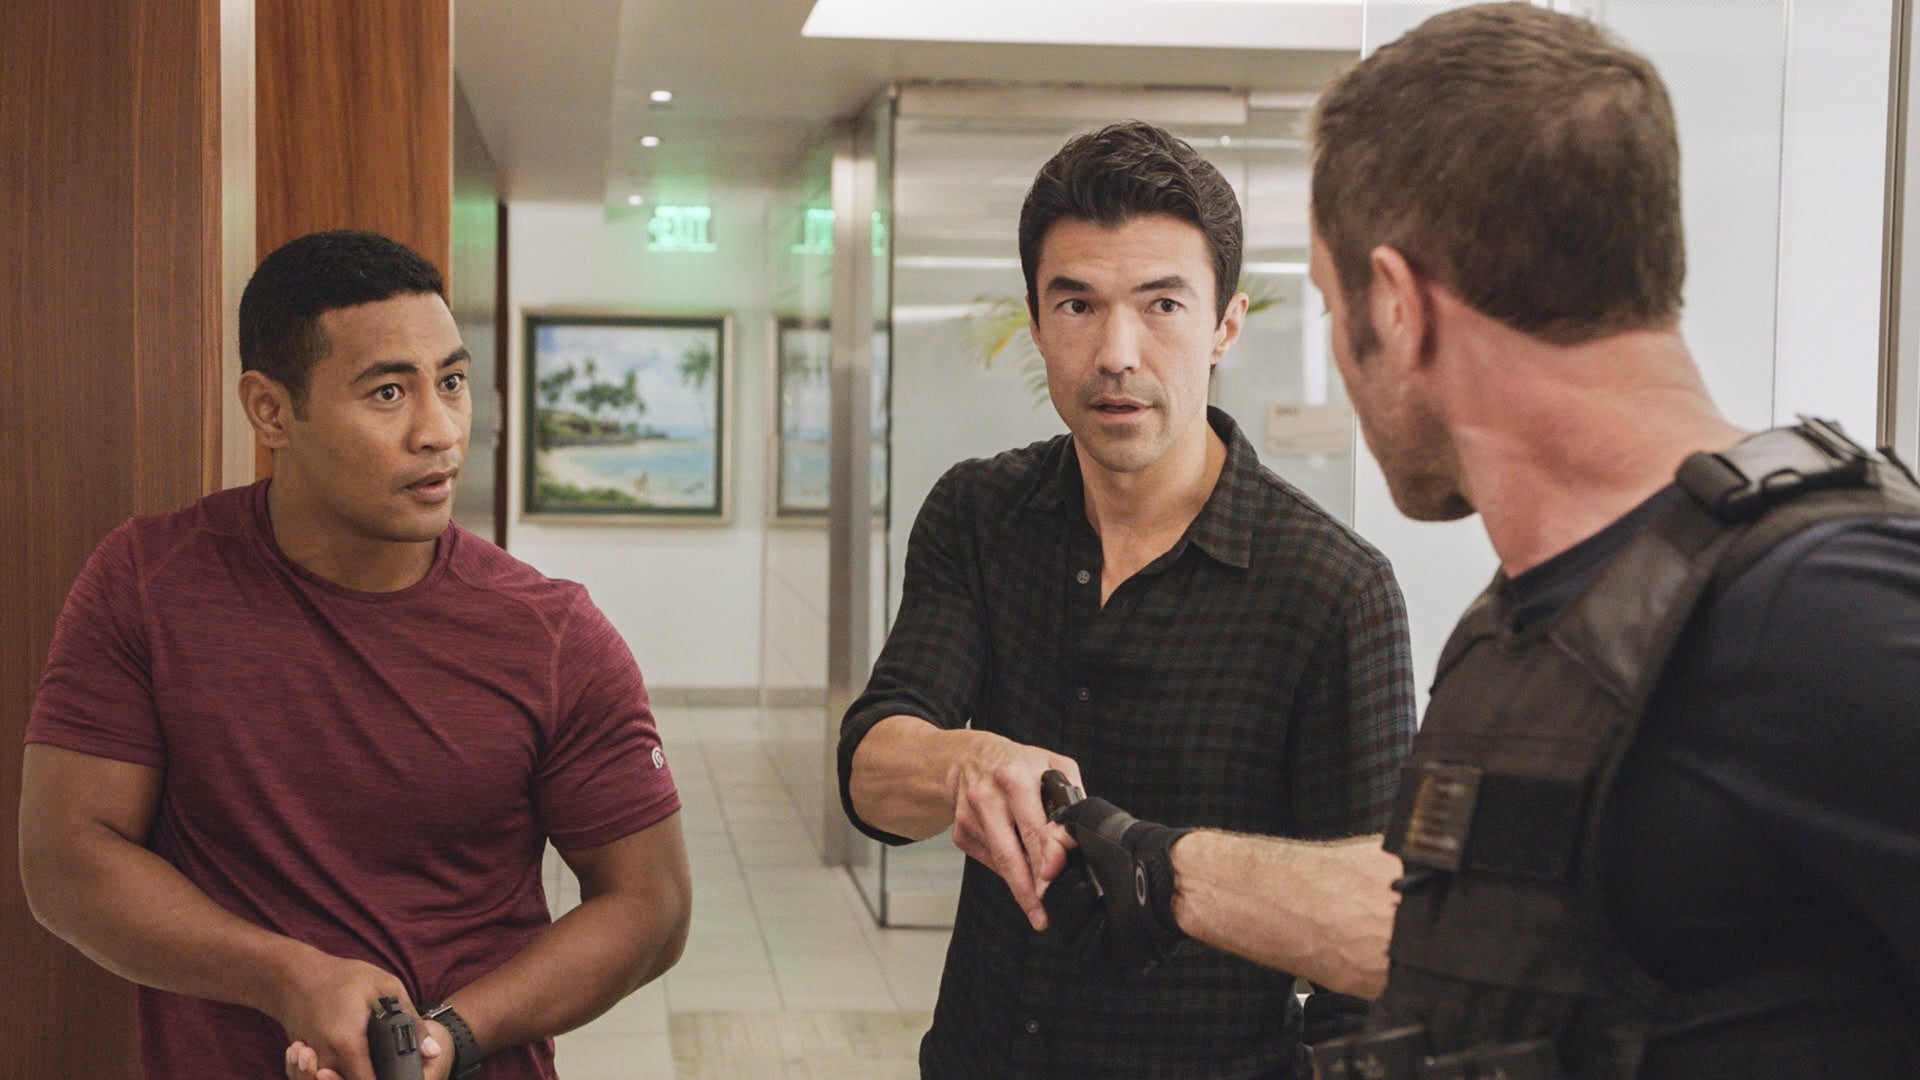 Hawaii Five-0 - Season 8 Episode 7 : Kau Ka 'Onohi Ali'i I Luna (The Royal Eyes Rest Above)